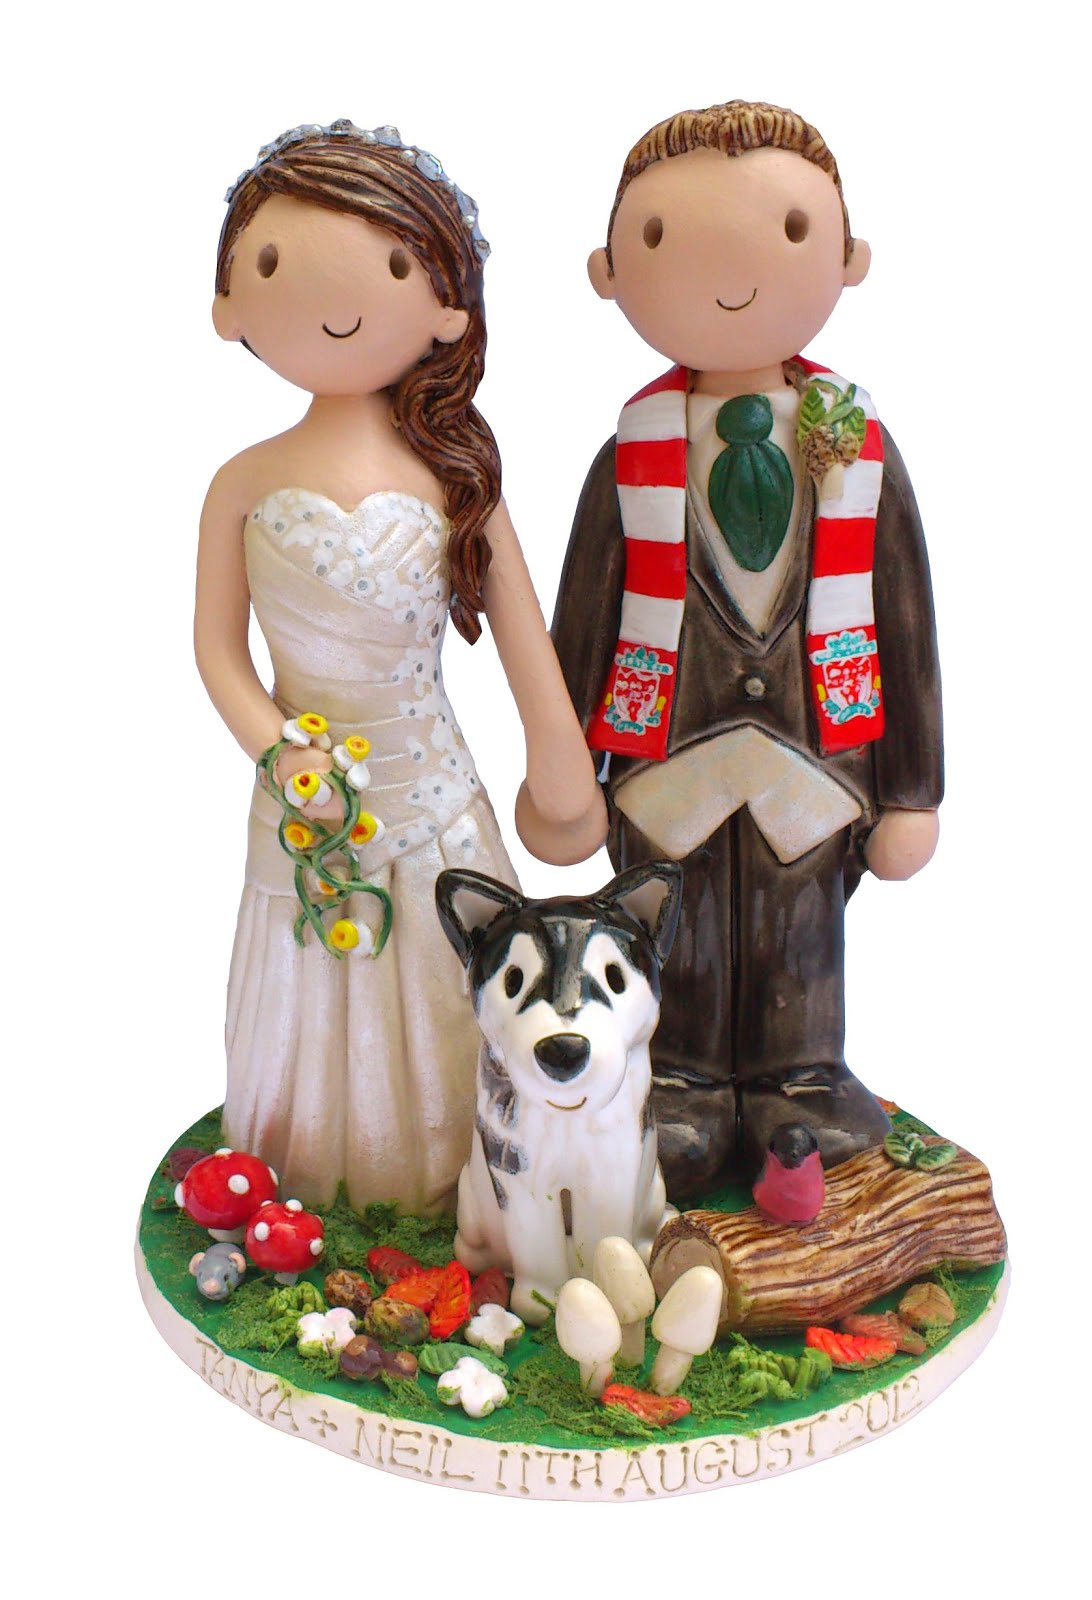 Wedding cake ornaments - Cake Toppers